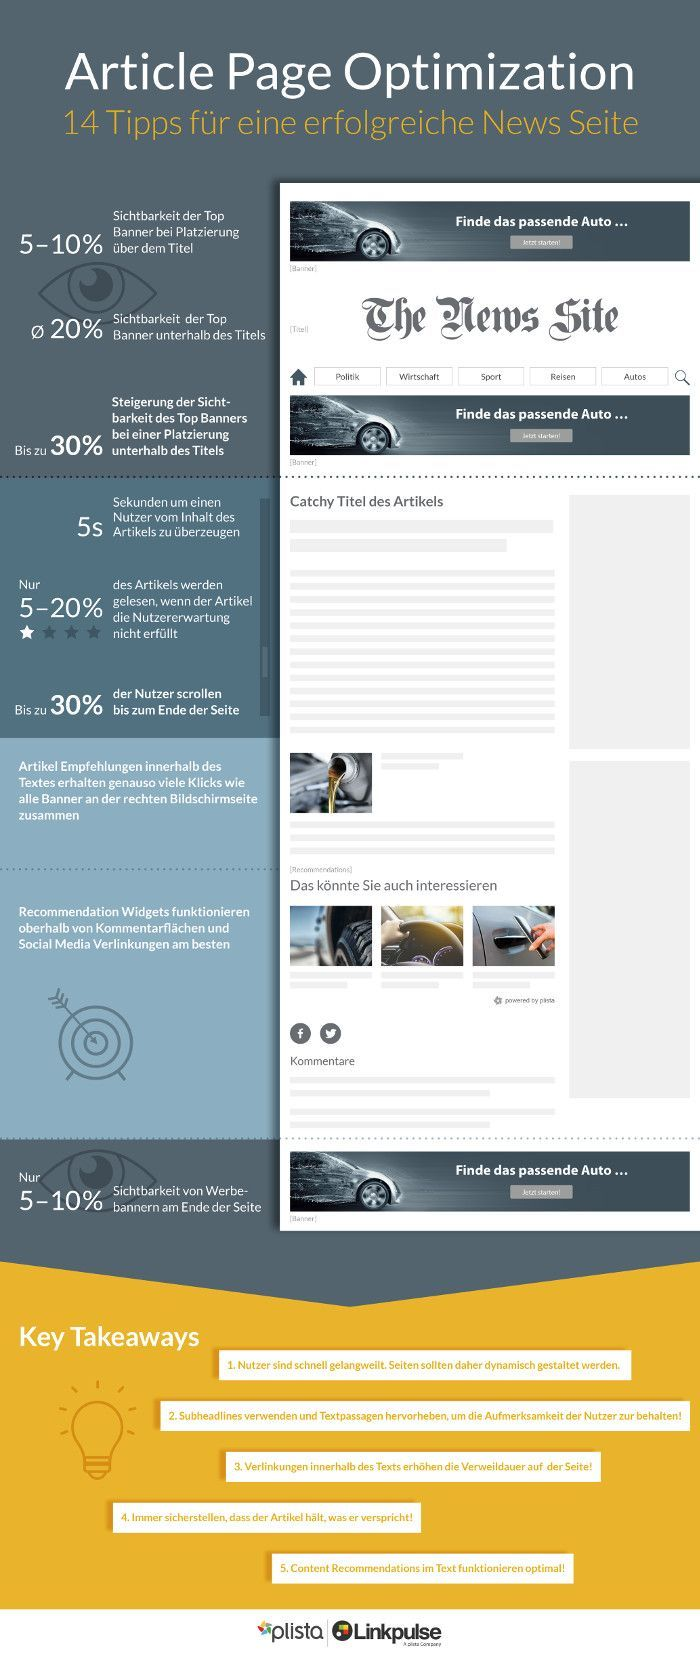 Article Page Optimization by plista and Linkpulse ...